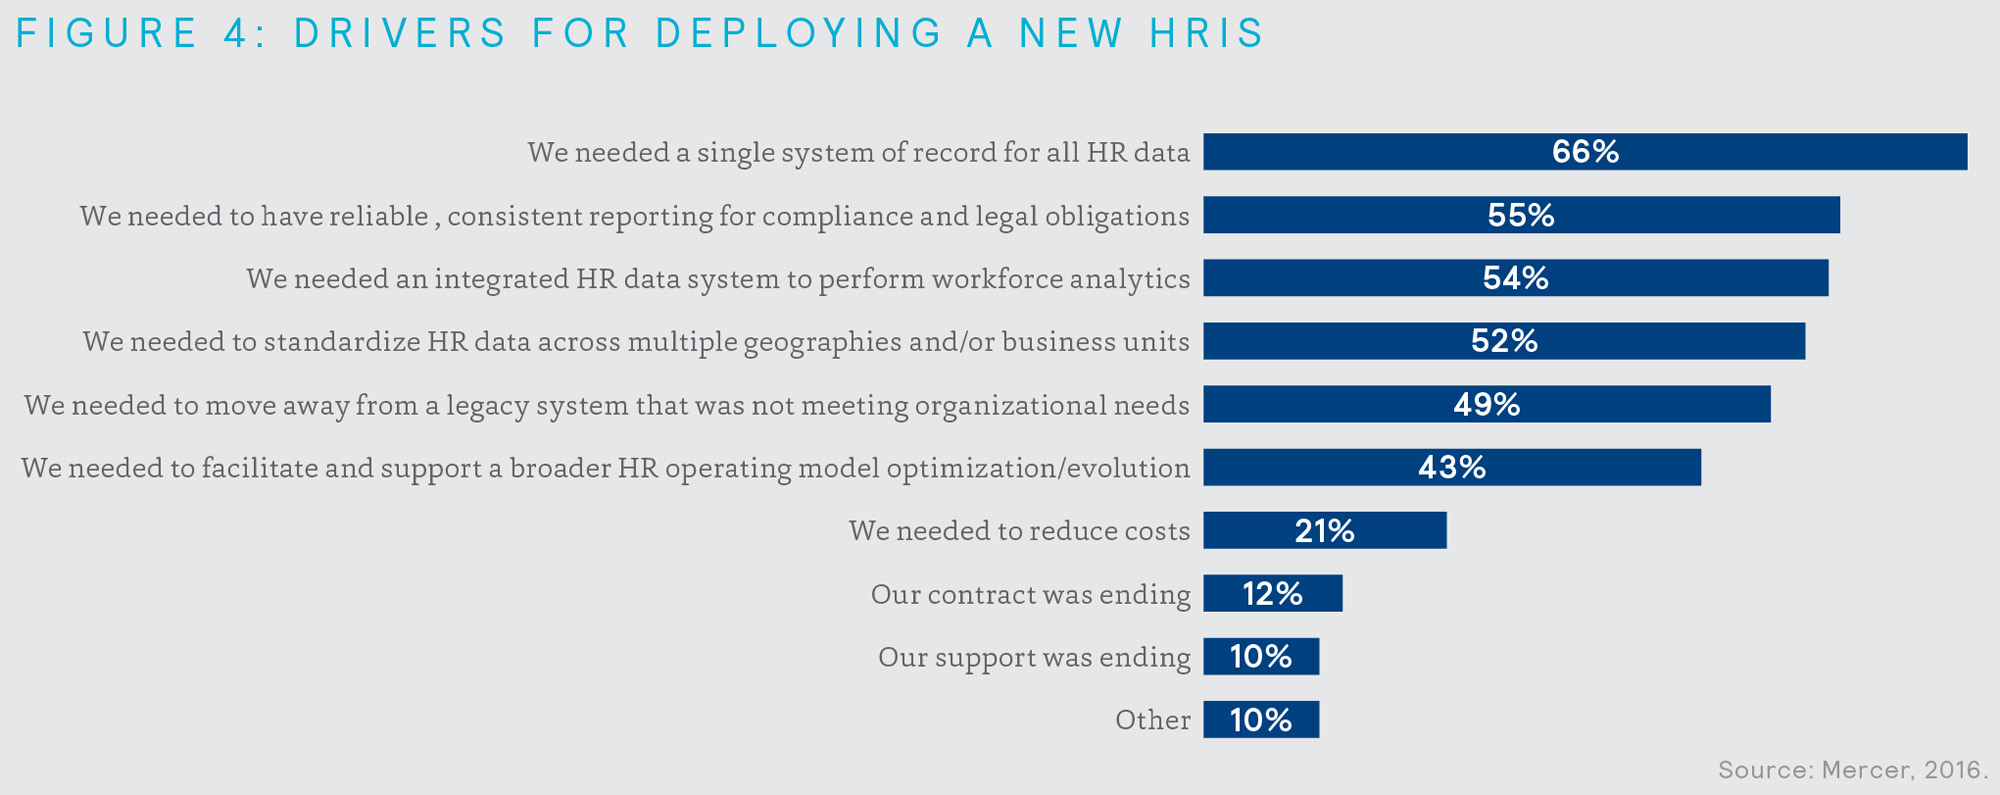 Drivers for deploying a new HRIS